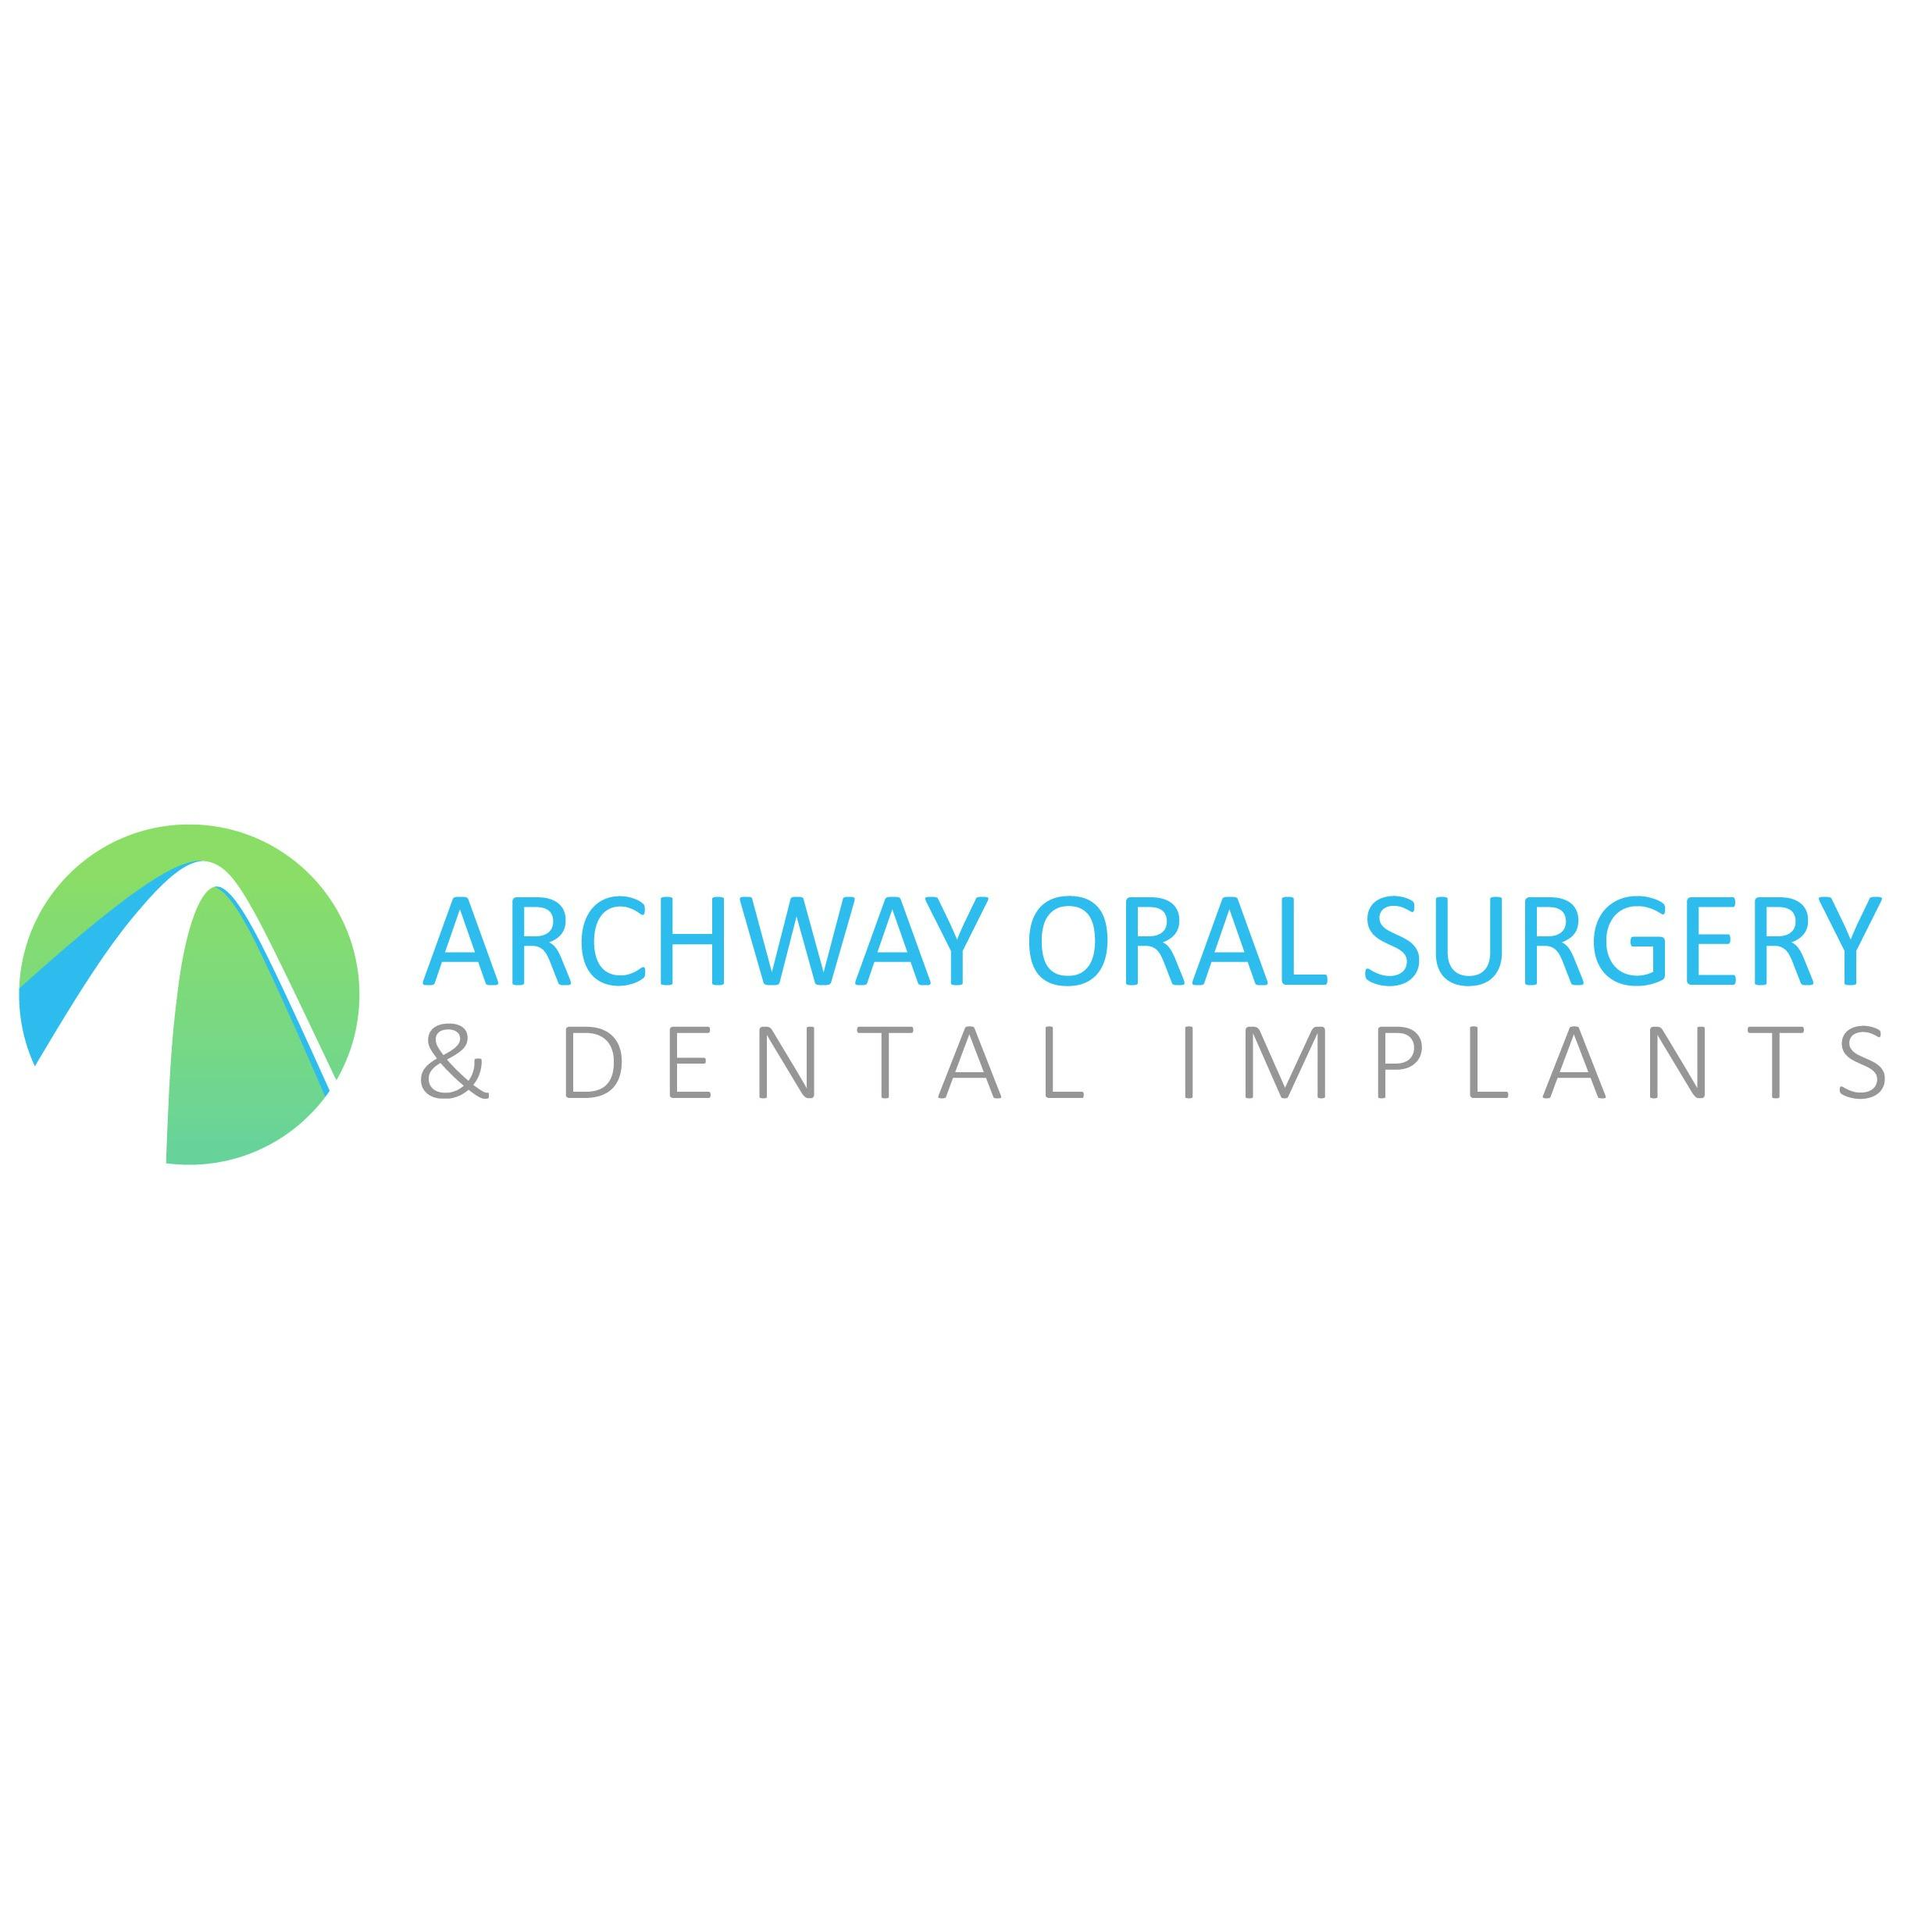 Archway Oral Surgery and Dental Implants